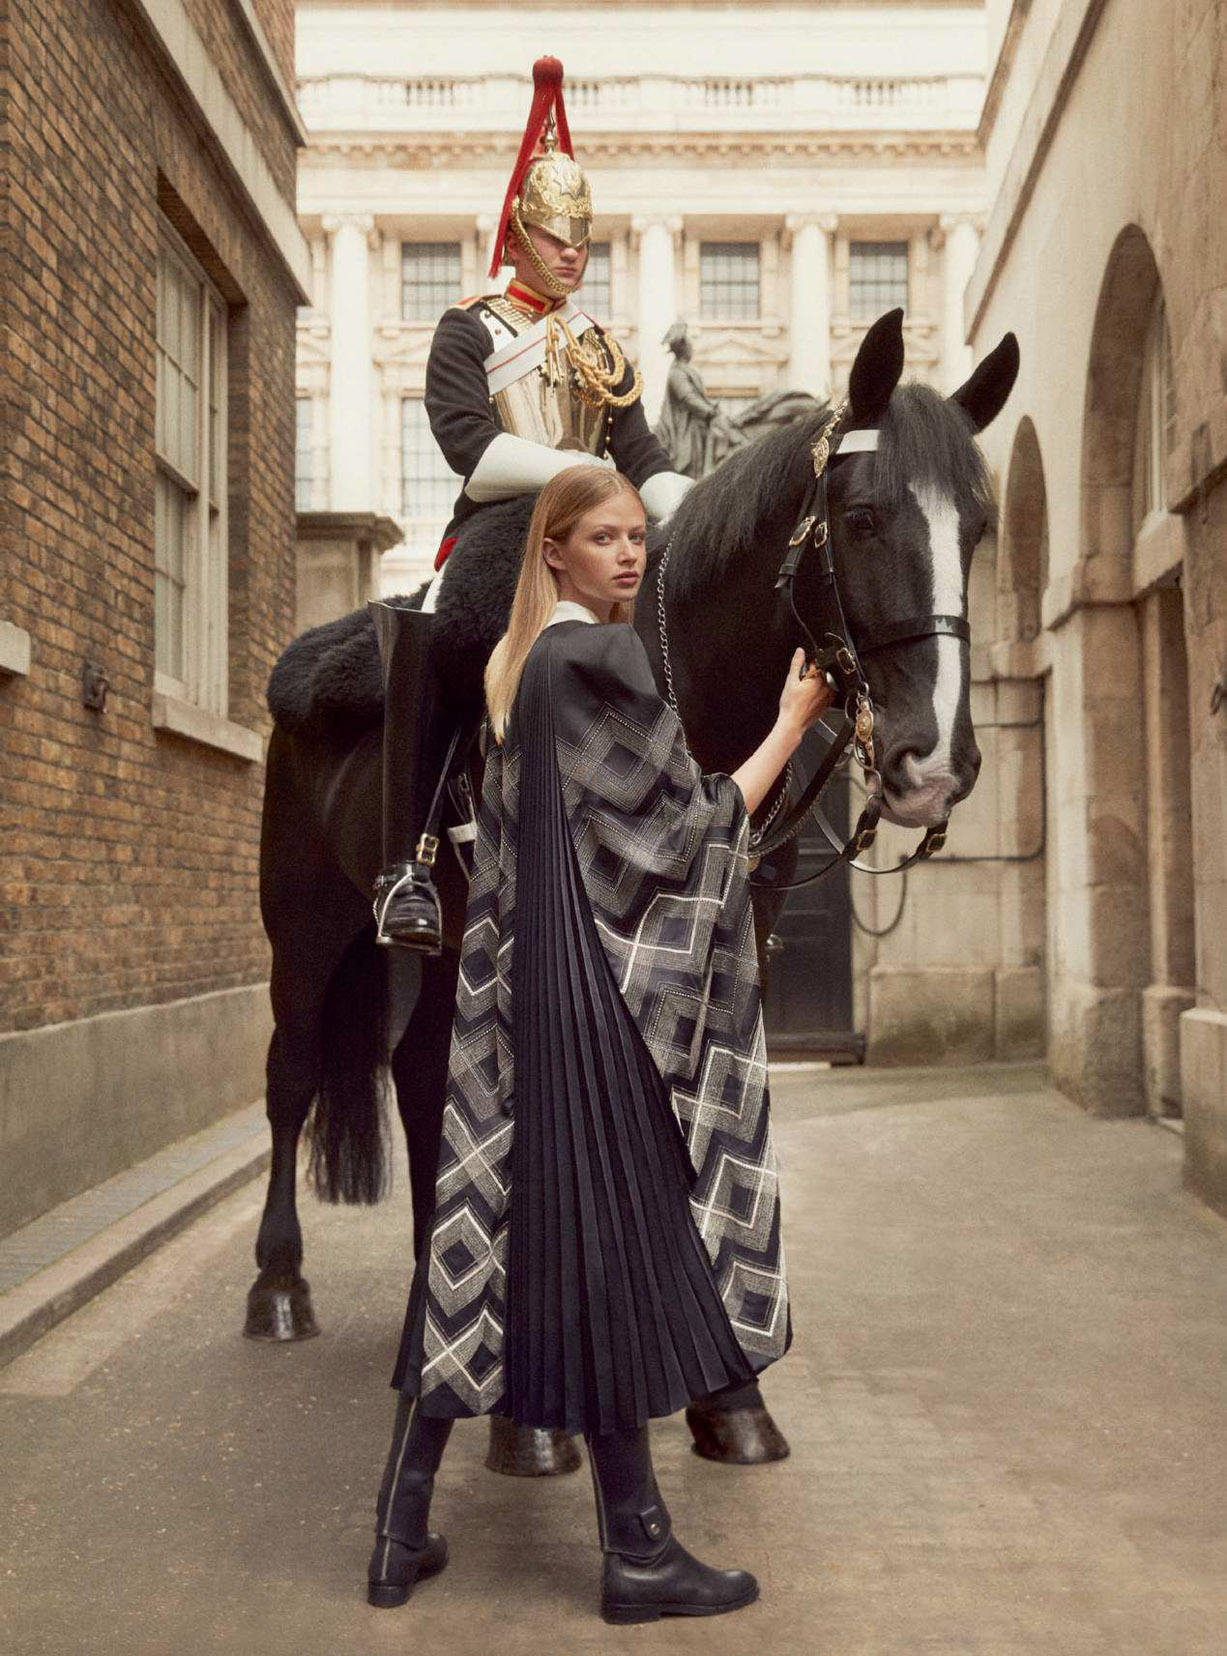 Королевская инспекция караула / For Queen and Country - Anna Lund by Richard Phibbs / Harpers Bazaar UK september 2018